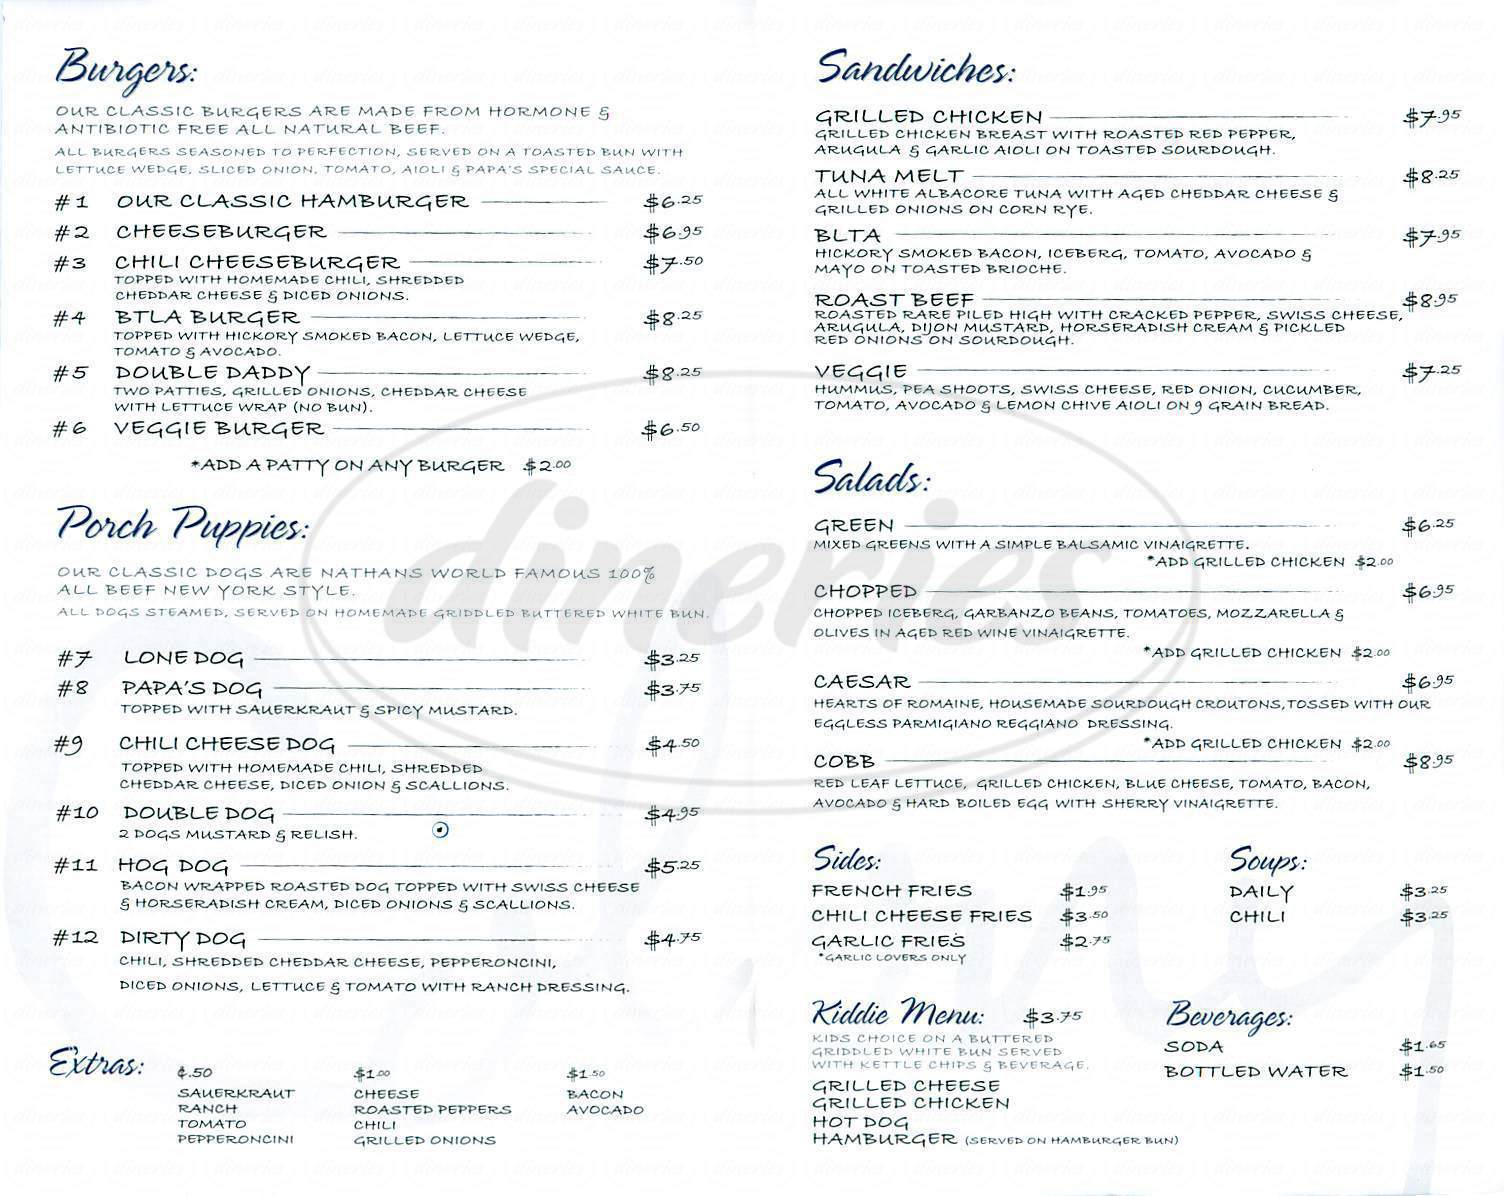 menu for The Colony Cafe